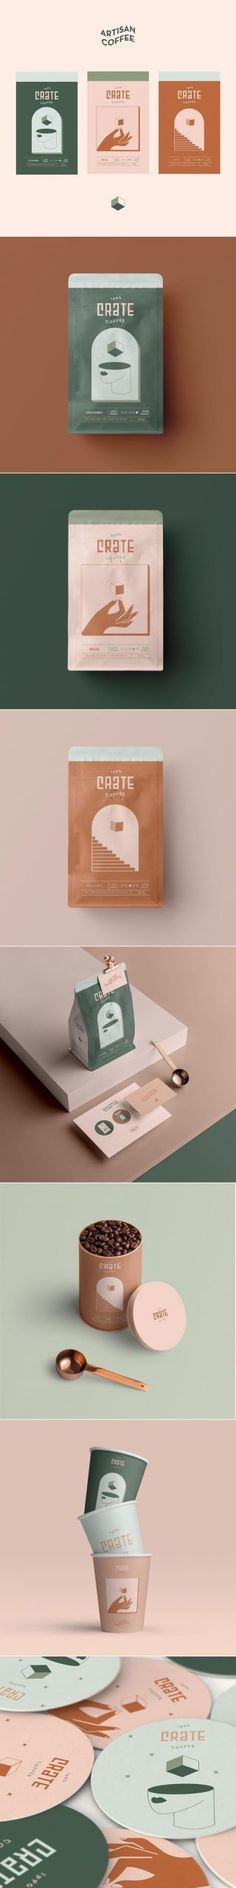 Crate Coffee artisan coffee brand and packaging by xhbt_branding - Modern Collateral Design, Corporate Design, Graphic Design Typography, Identity Design, Corporate Branding, Packaging Box Design, Brand Packaging, Product Packaging, Package Design